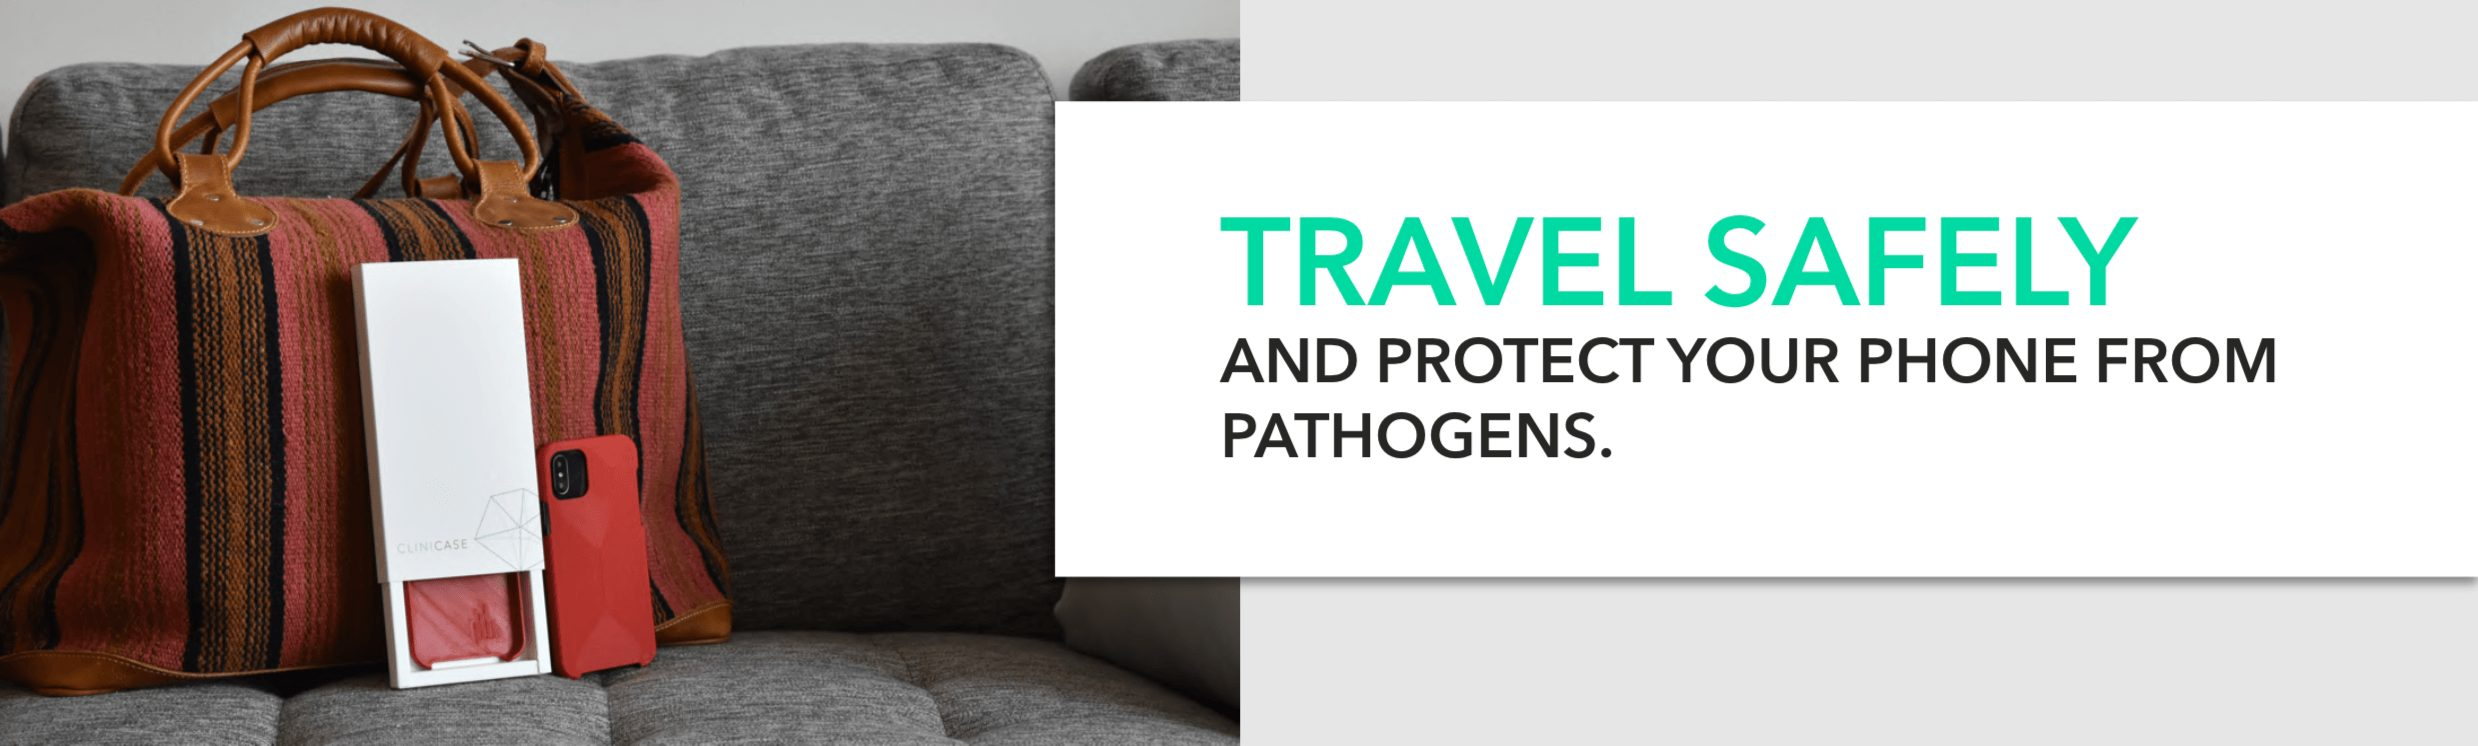 Clini case antiviral Phonecases to protect from pathogens